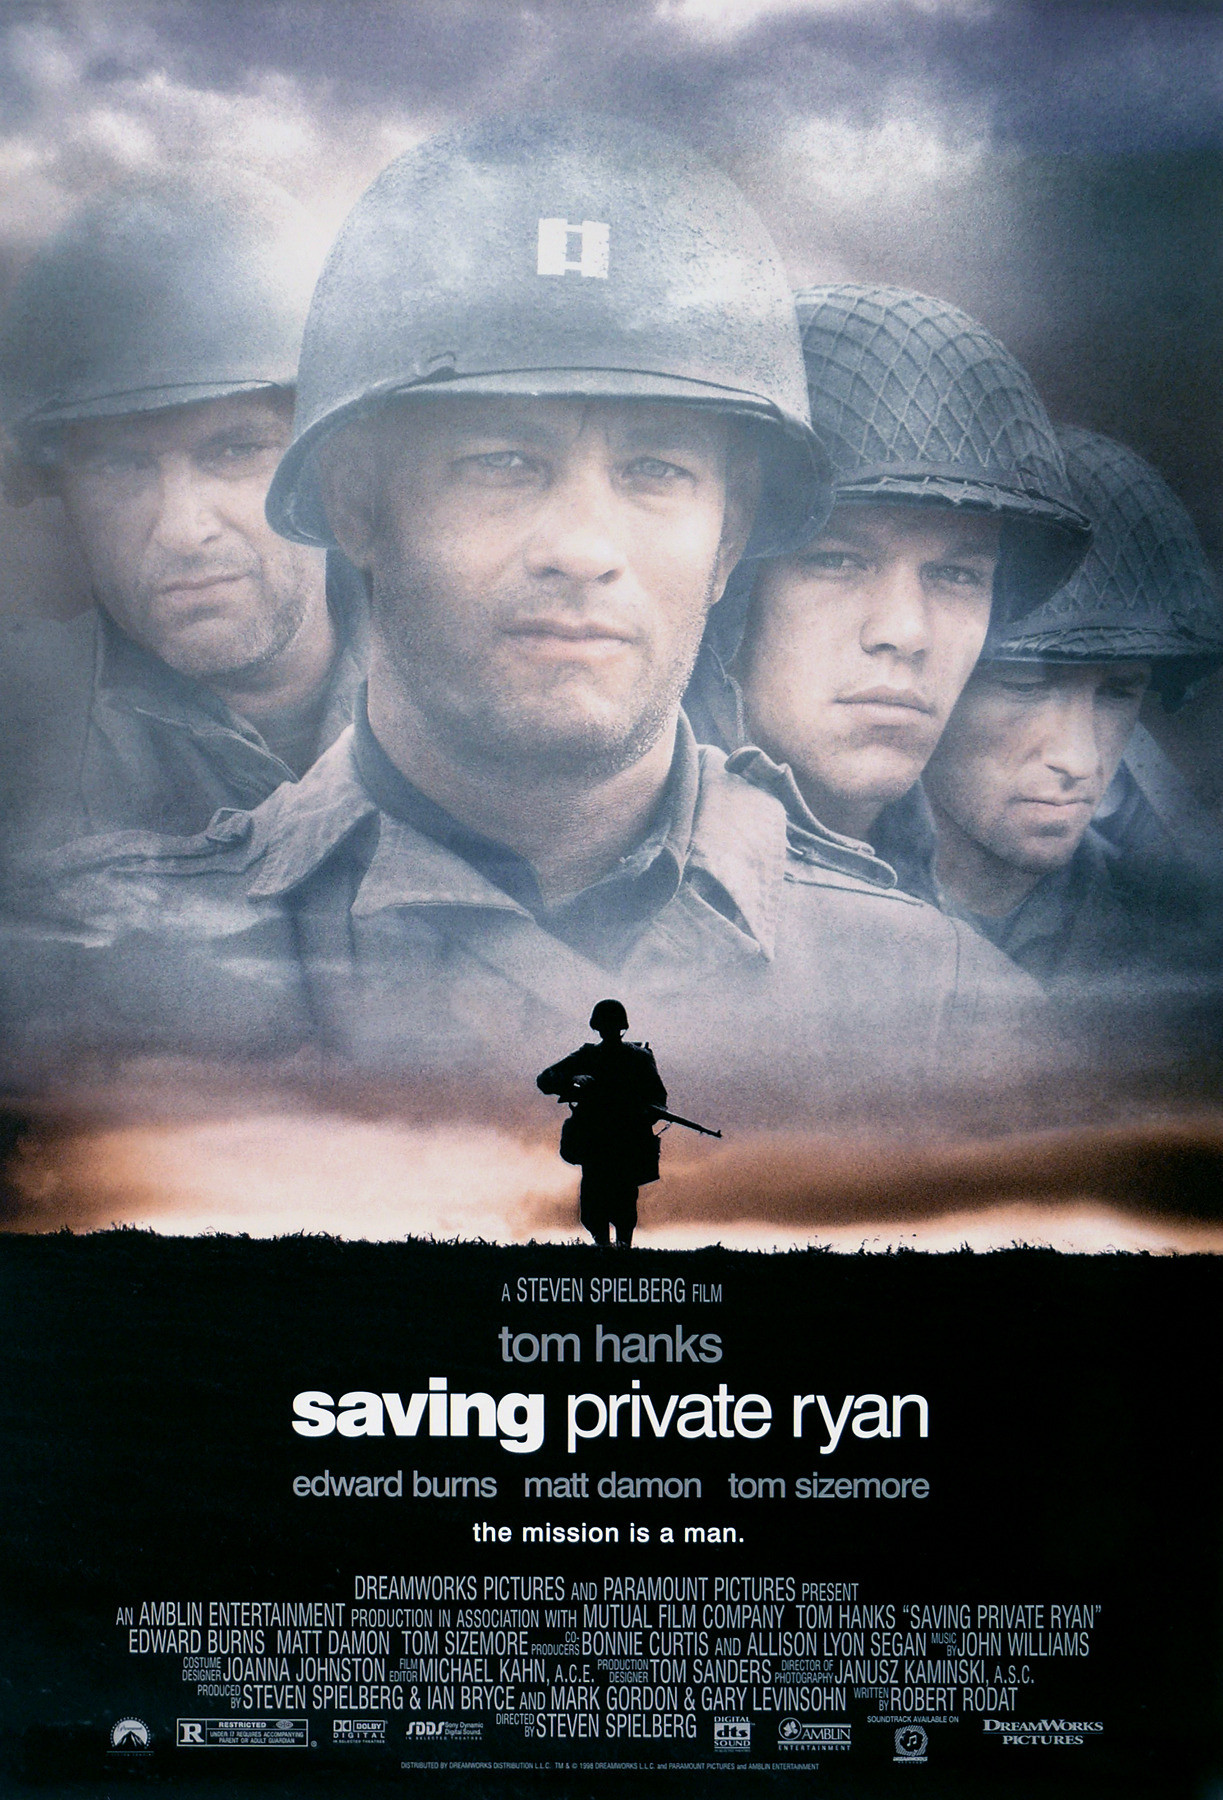 saving private ryan accuracy review As family-night entertainment, ryan is a casualty but as a morality tale underscoring the horror of armed combat, it accomplishes its mission brilliantly.